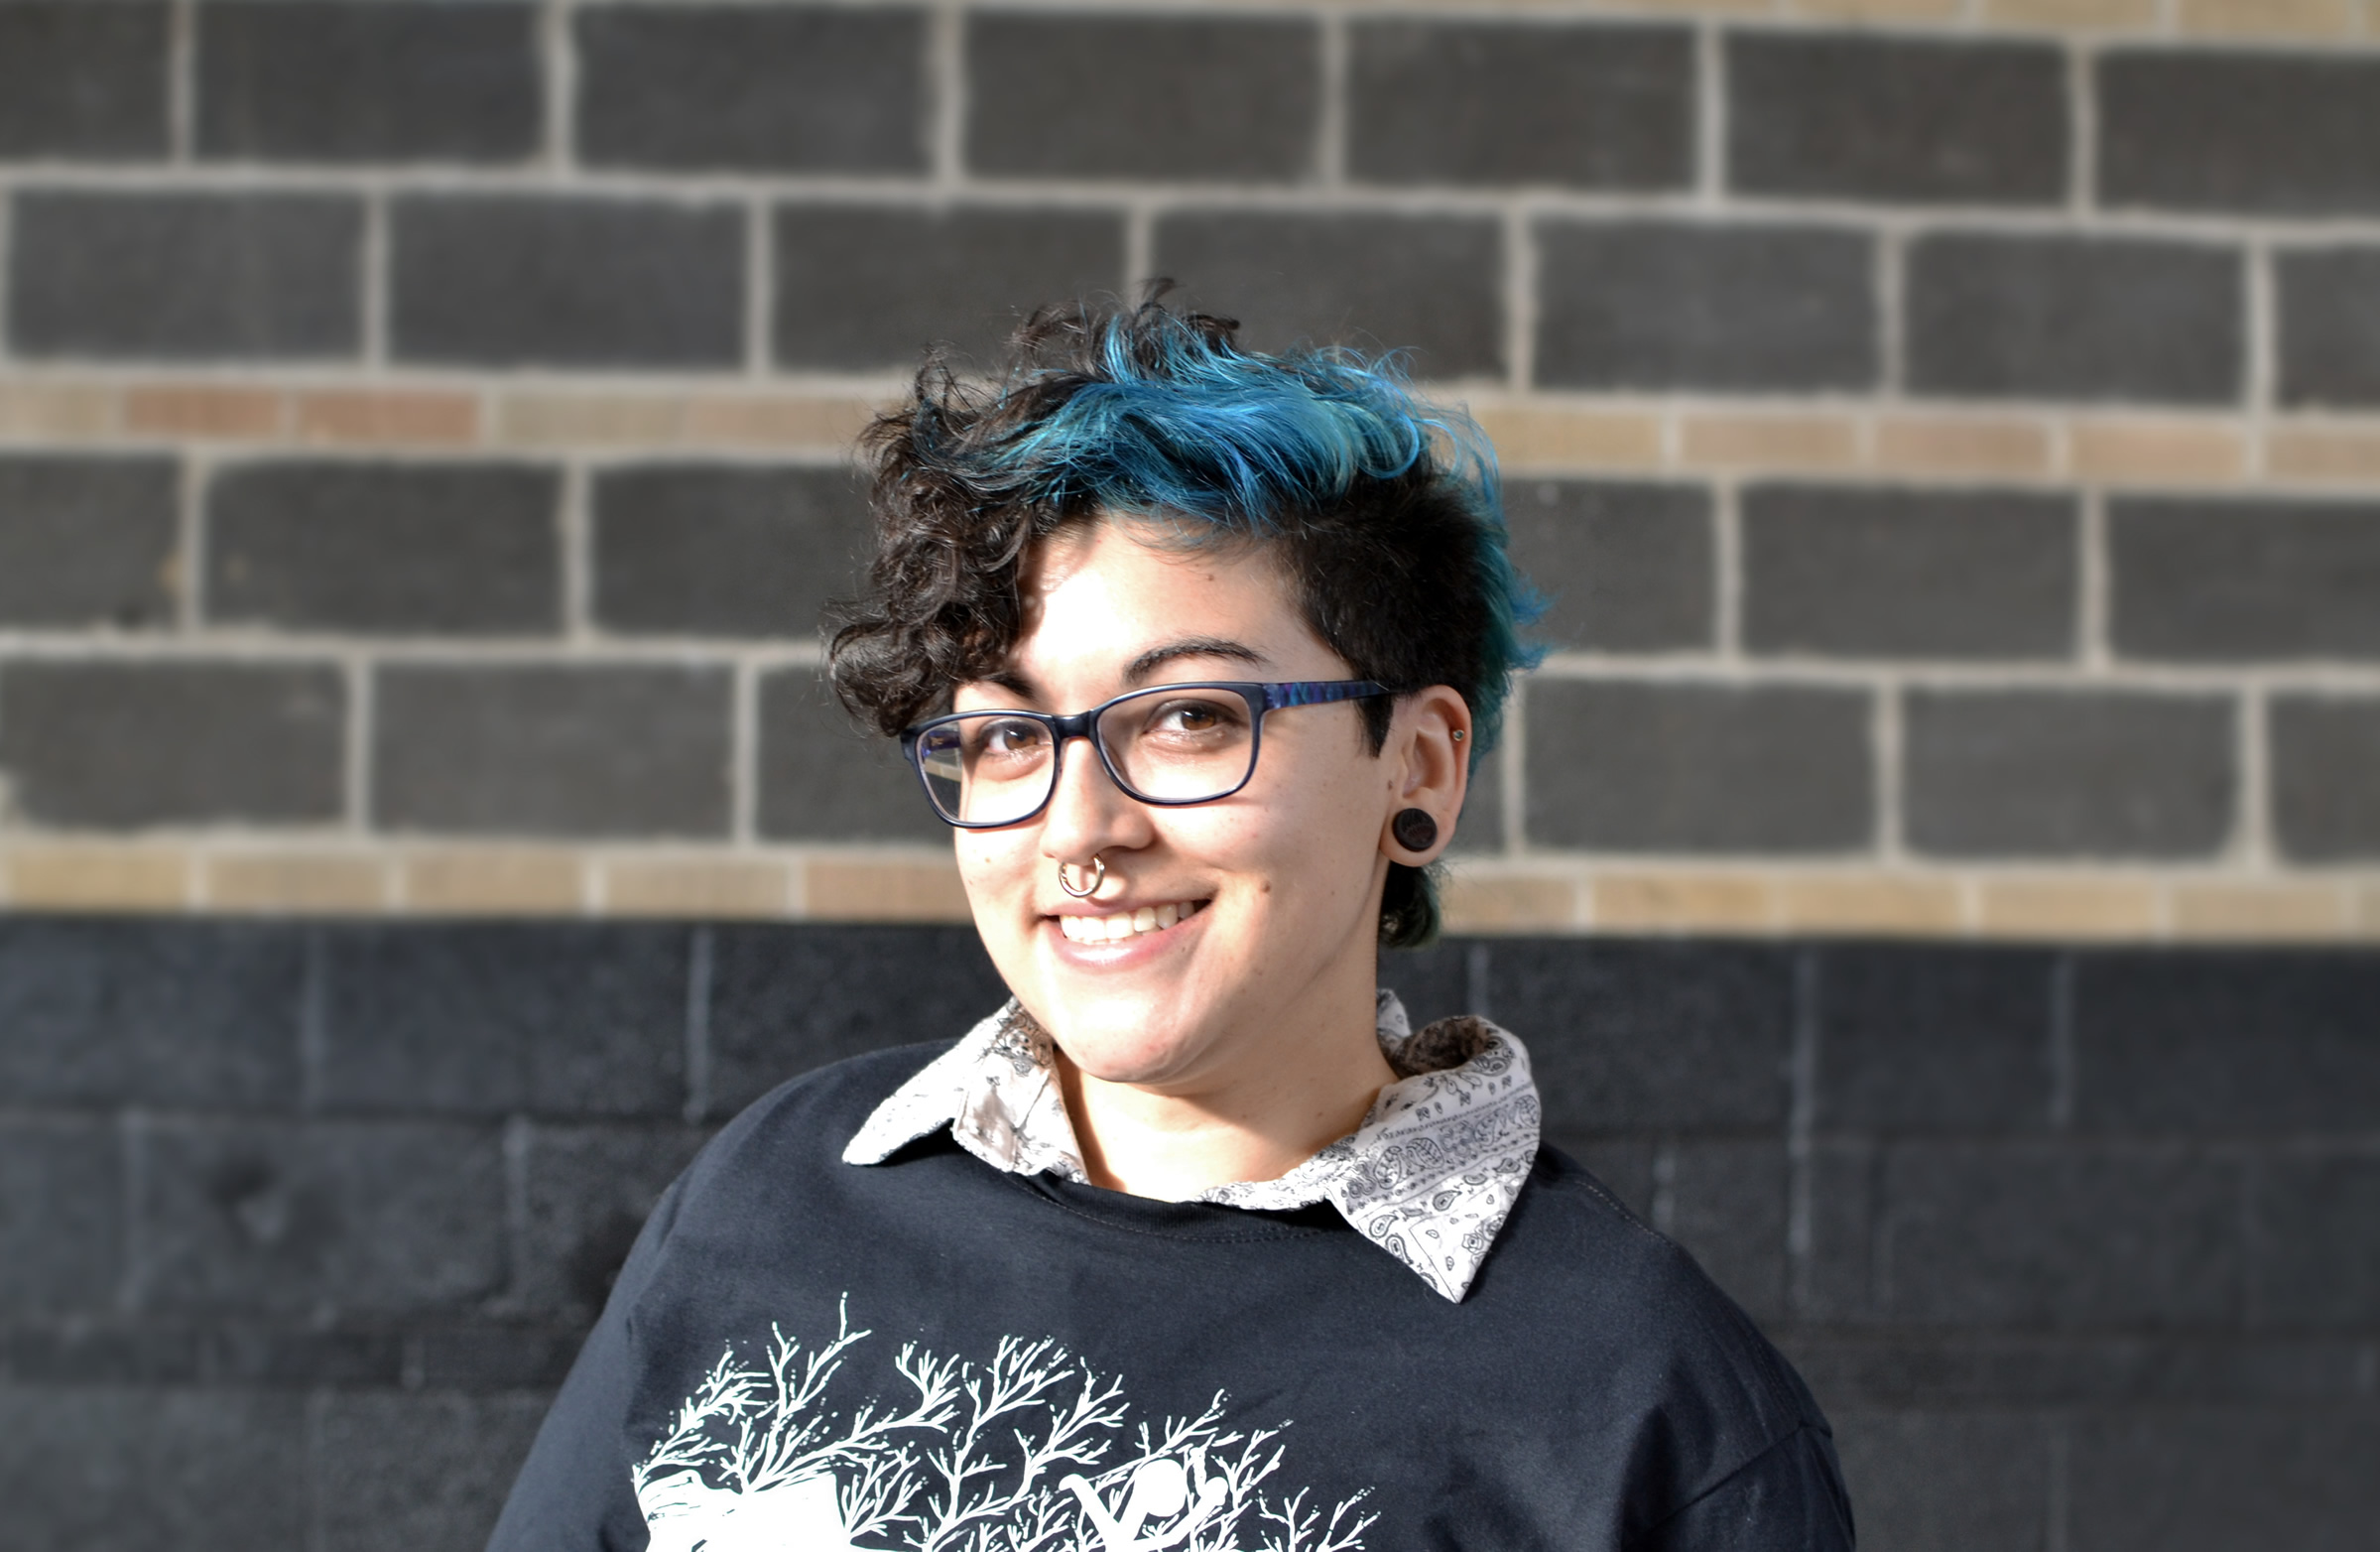 Woman with black and blue hair, black glasses, and a silver nose ring angled toward camera and smiling.